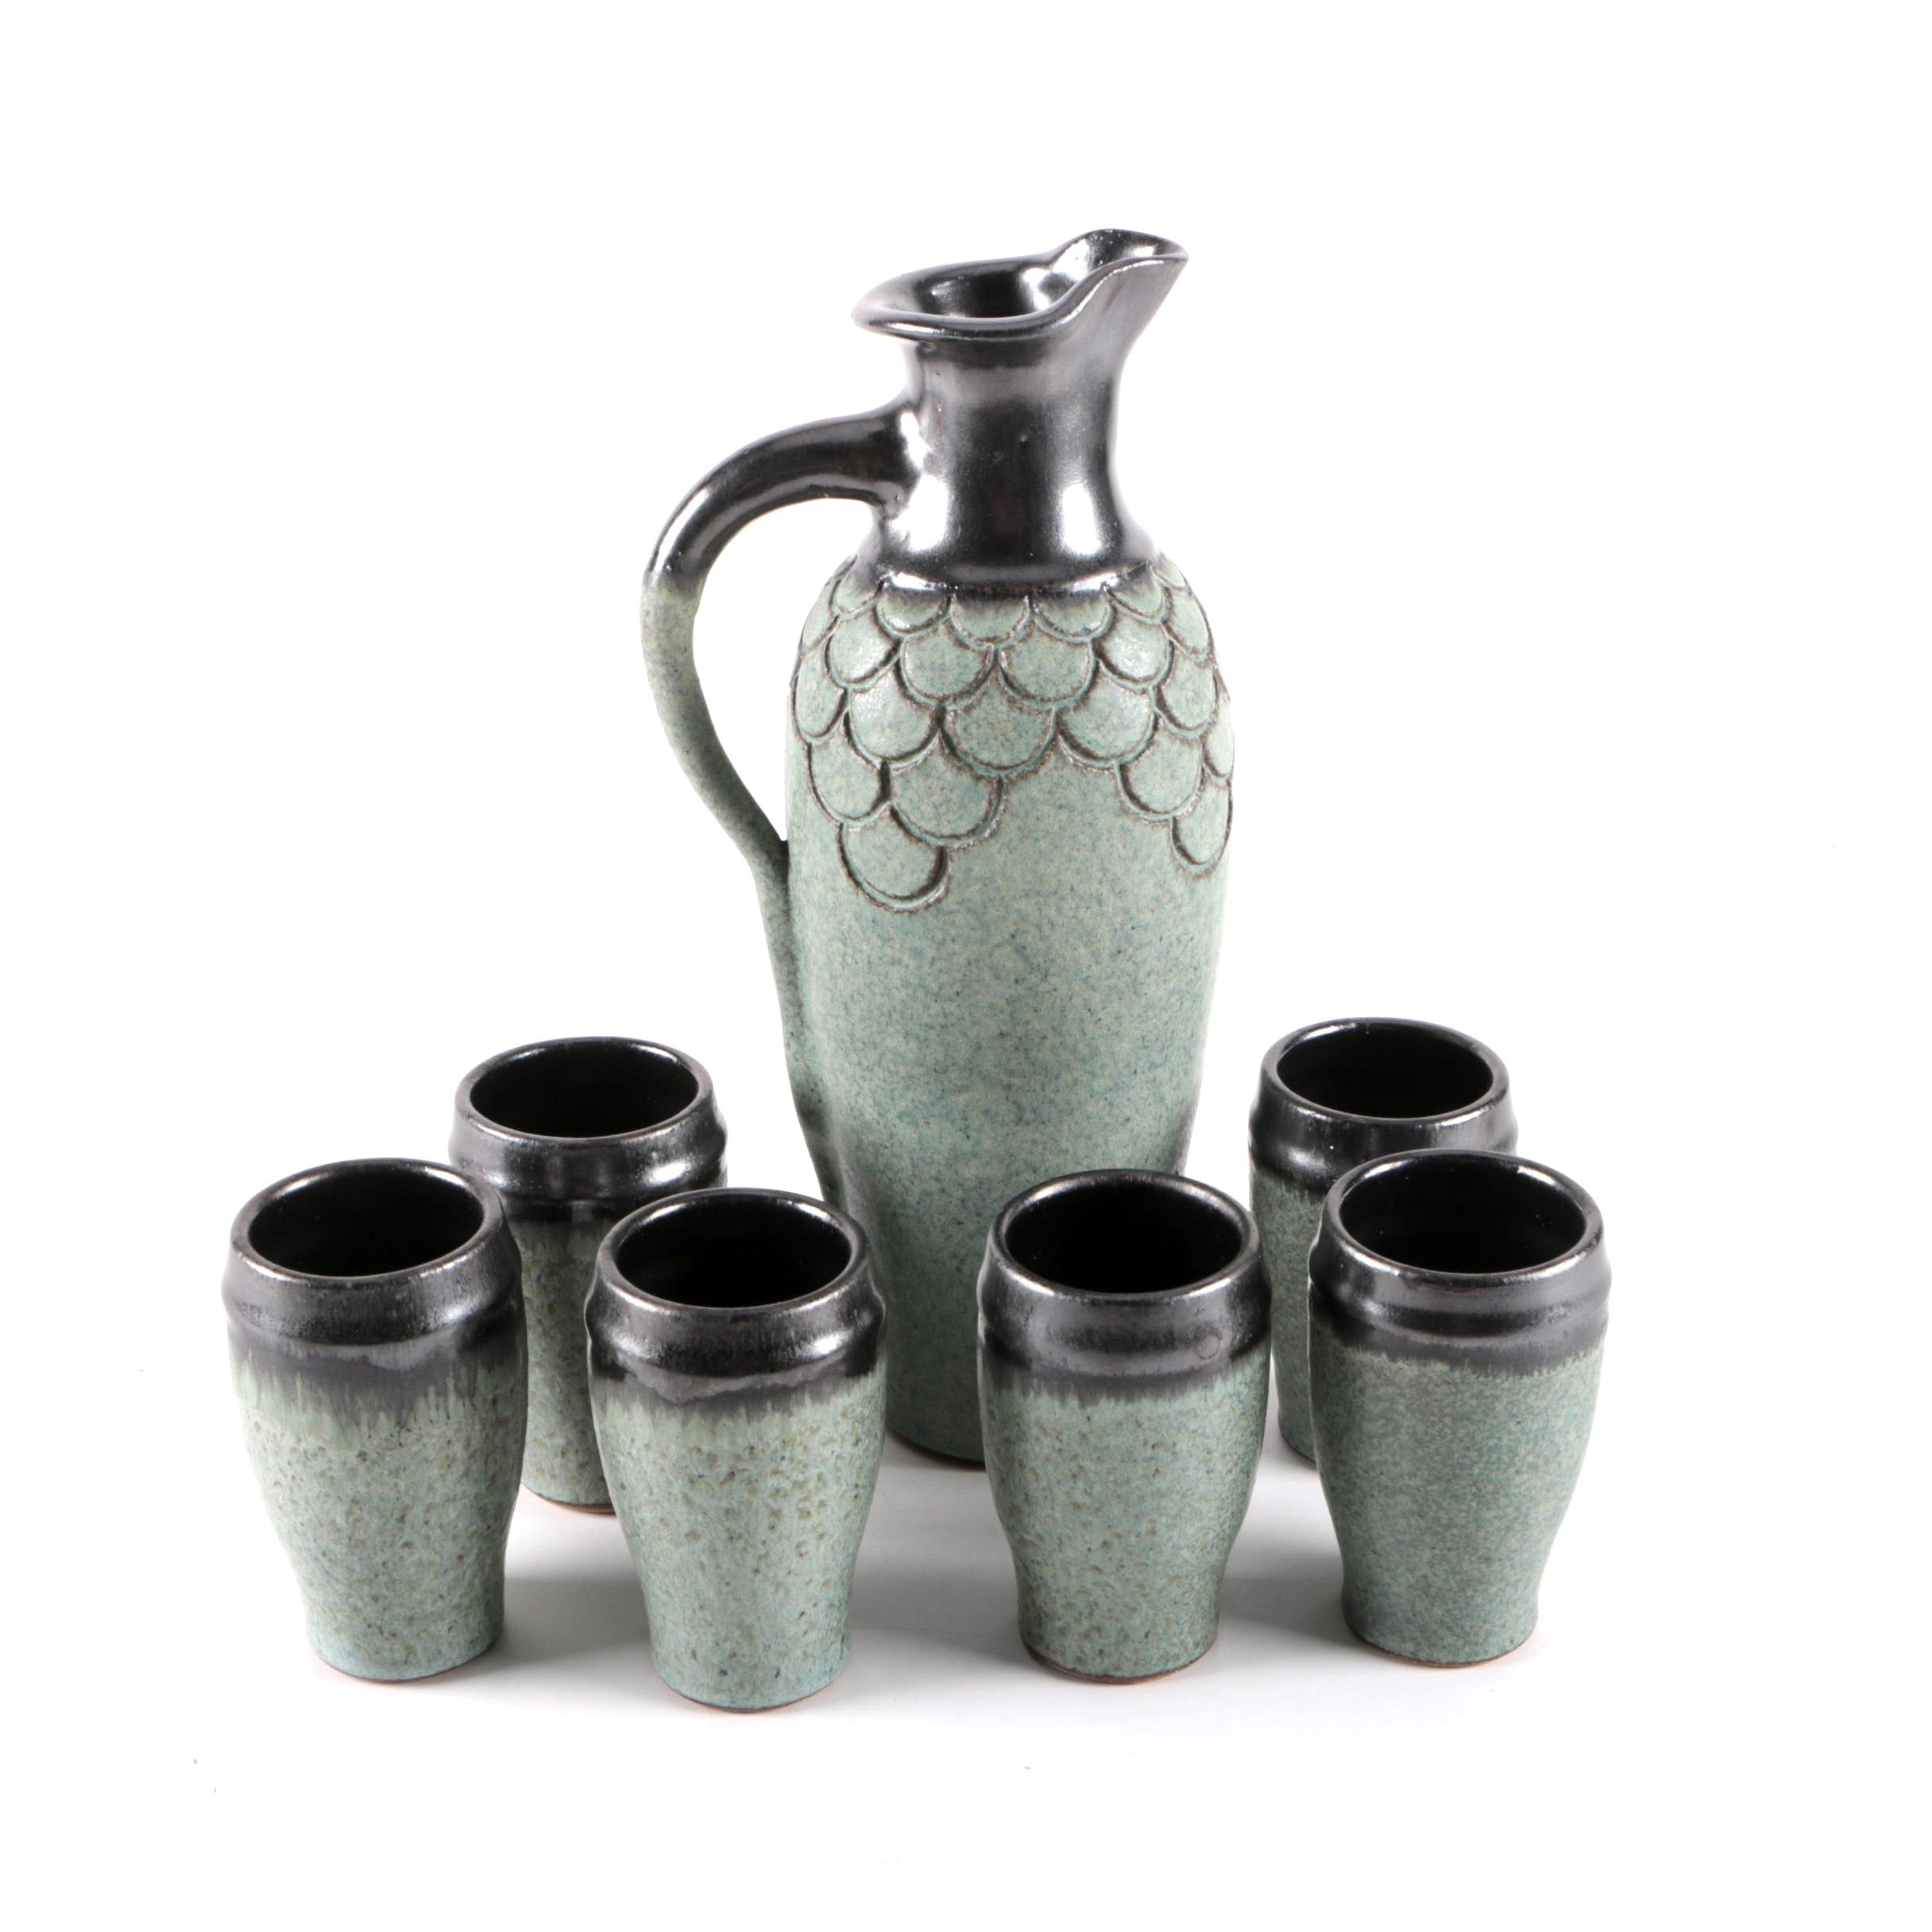 Speckled Glazed Ceramic Pitcher and Six Matching Cups